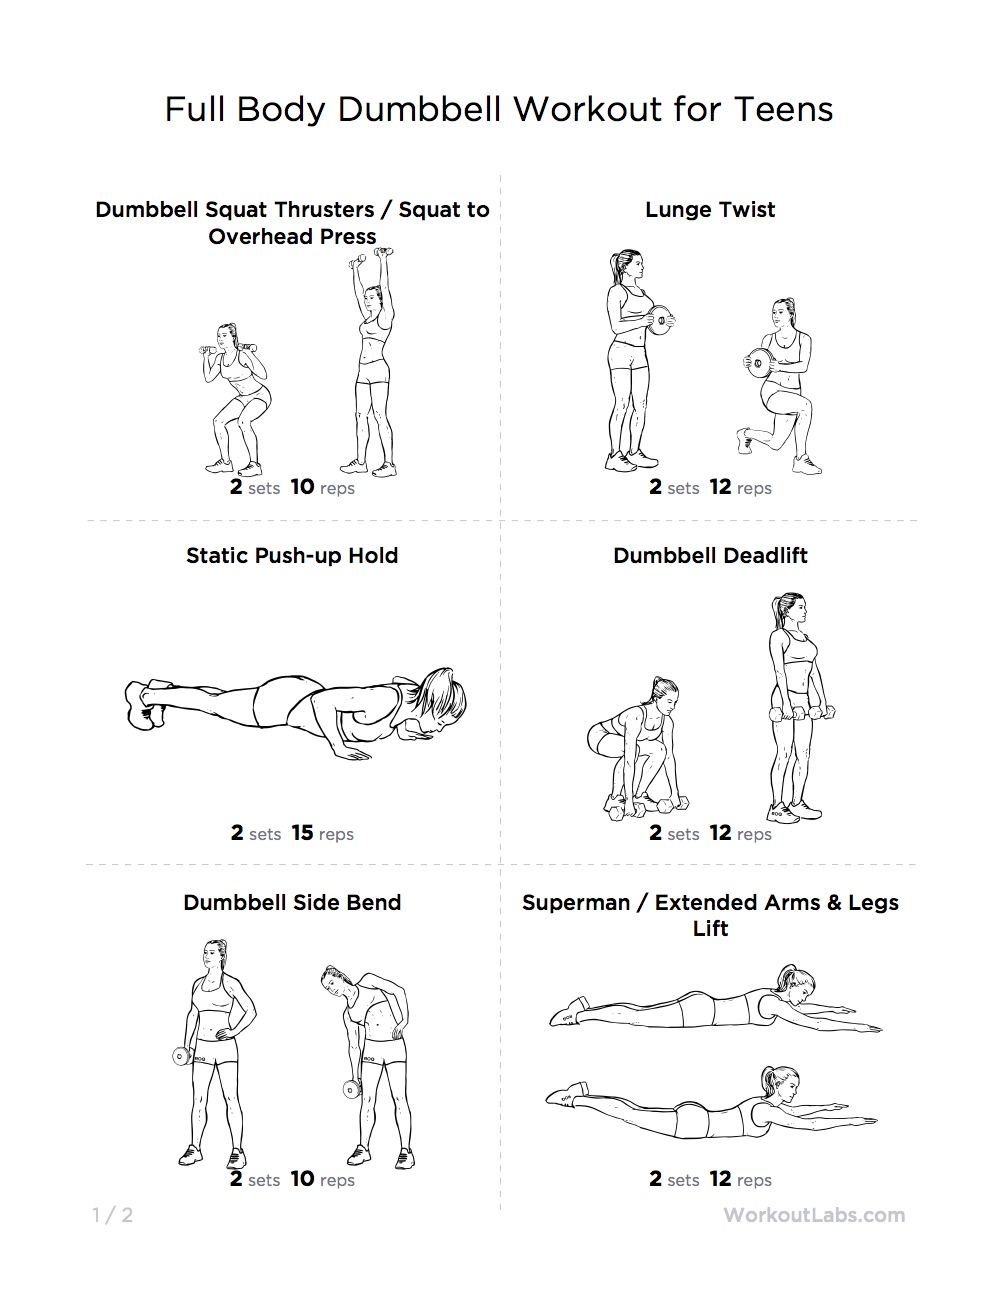 Full Body Dumbbell Workout For Teens W1